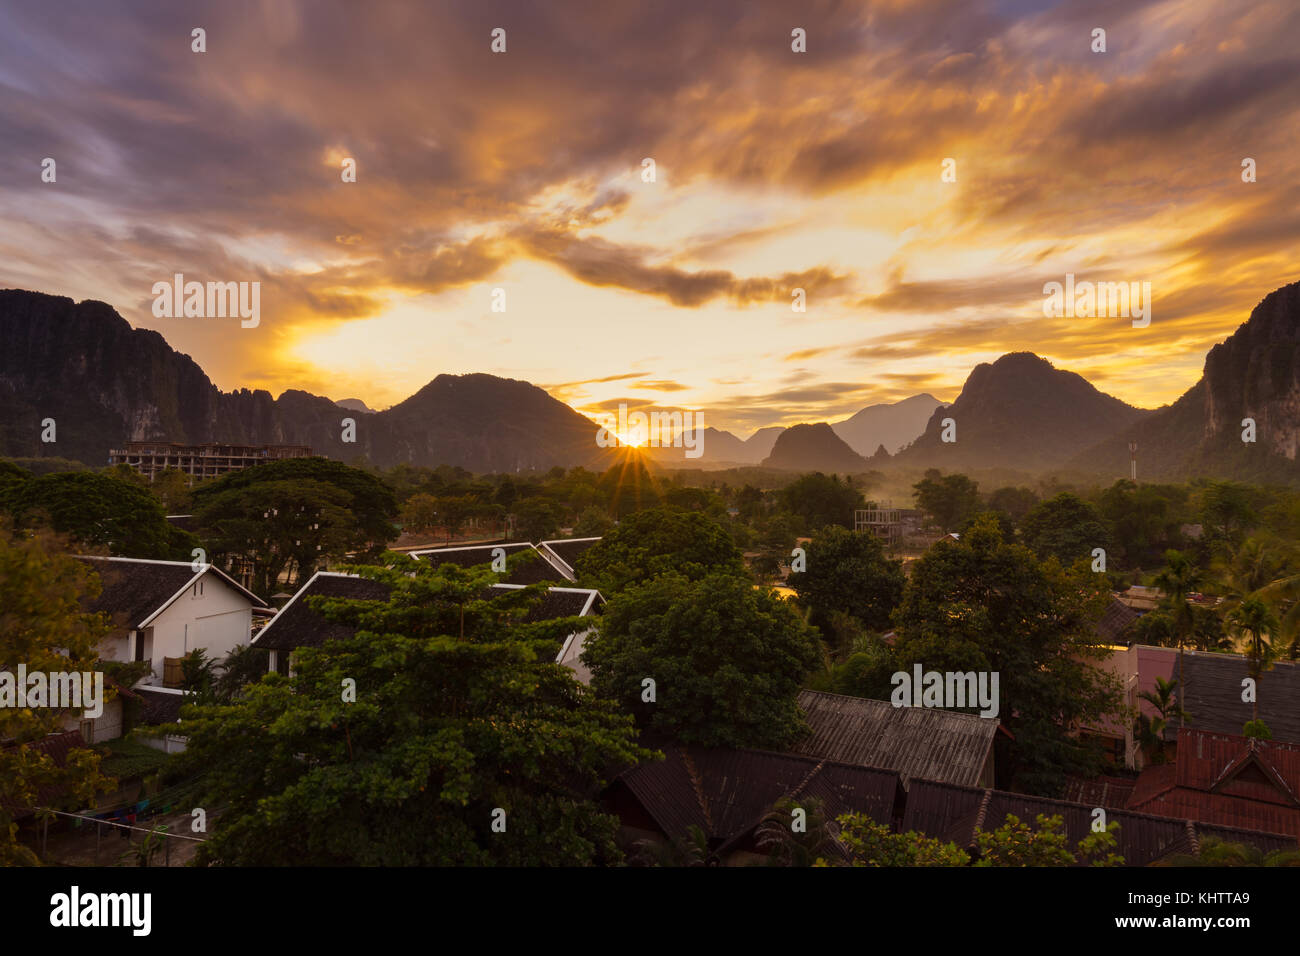 Viewpoint and beautiful sunset at Vang Vieng, Laos. - Stock Image